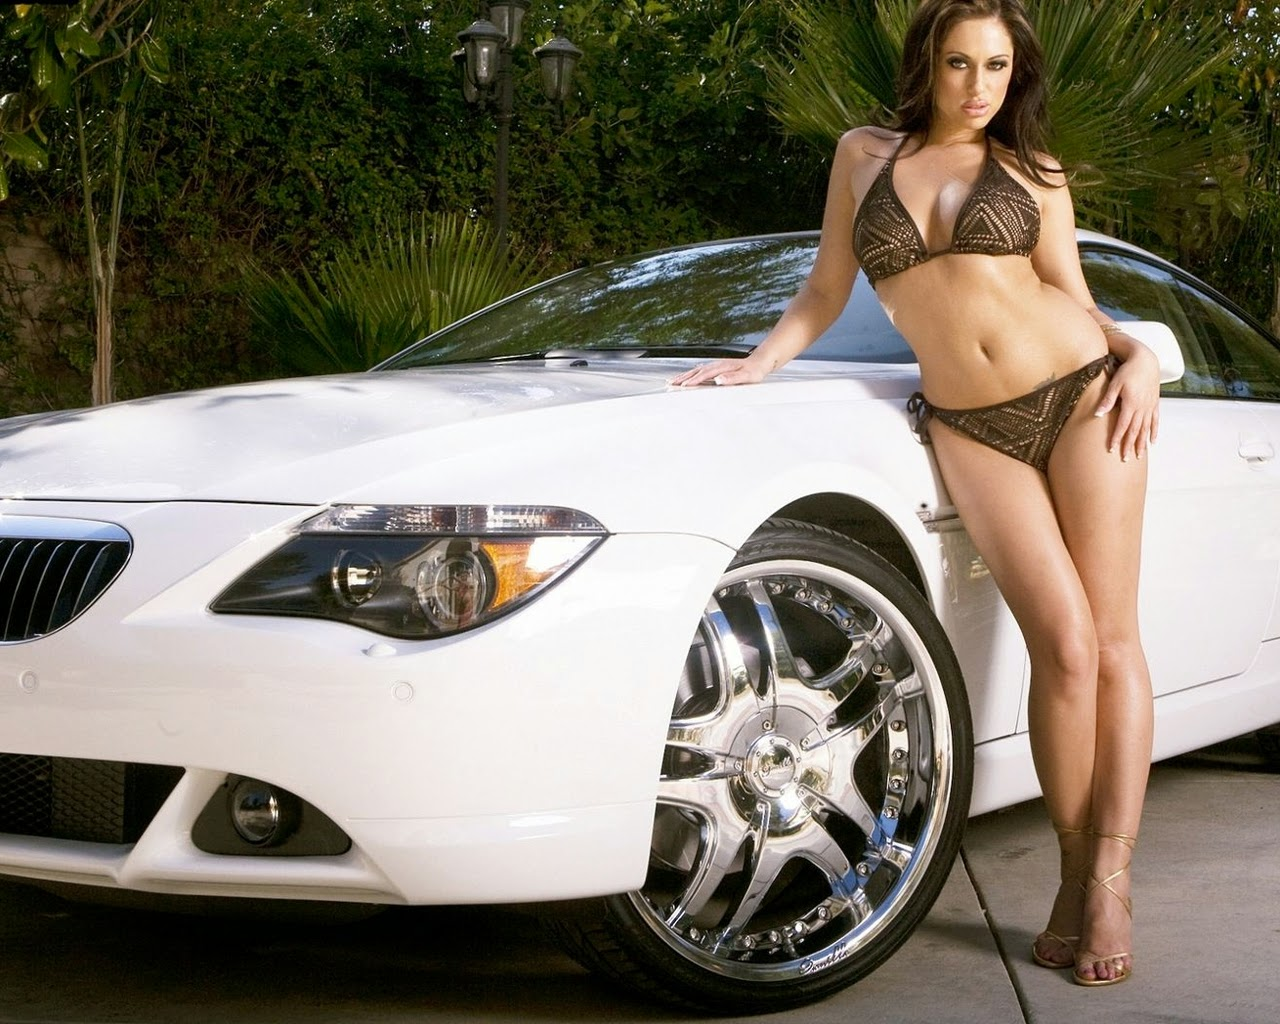 Sexy Girls And Cars Wallpapers Hd Part 6 O Wallpaper